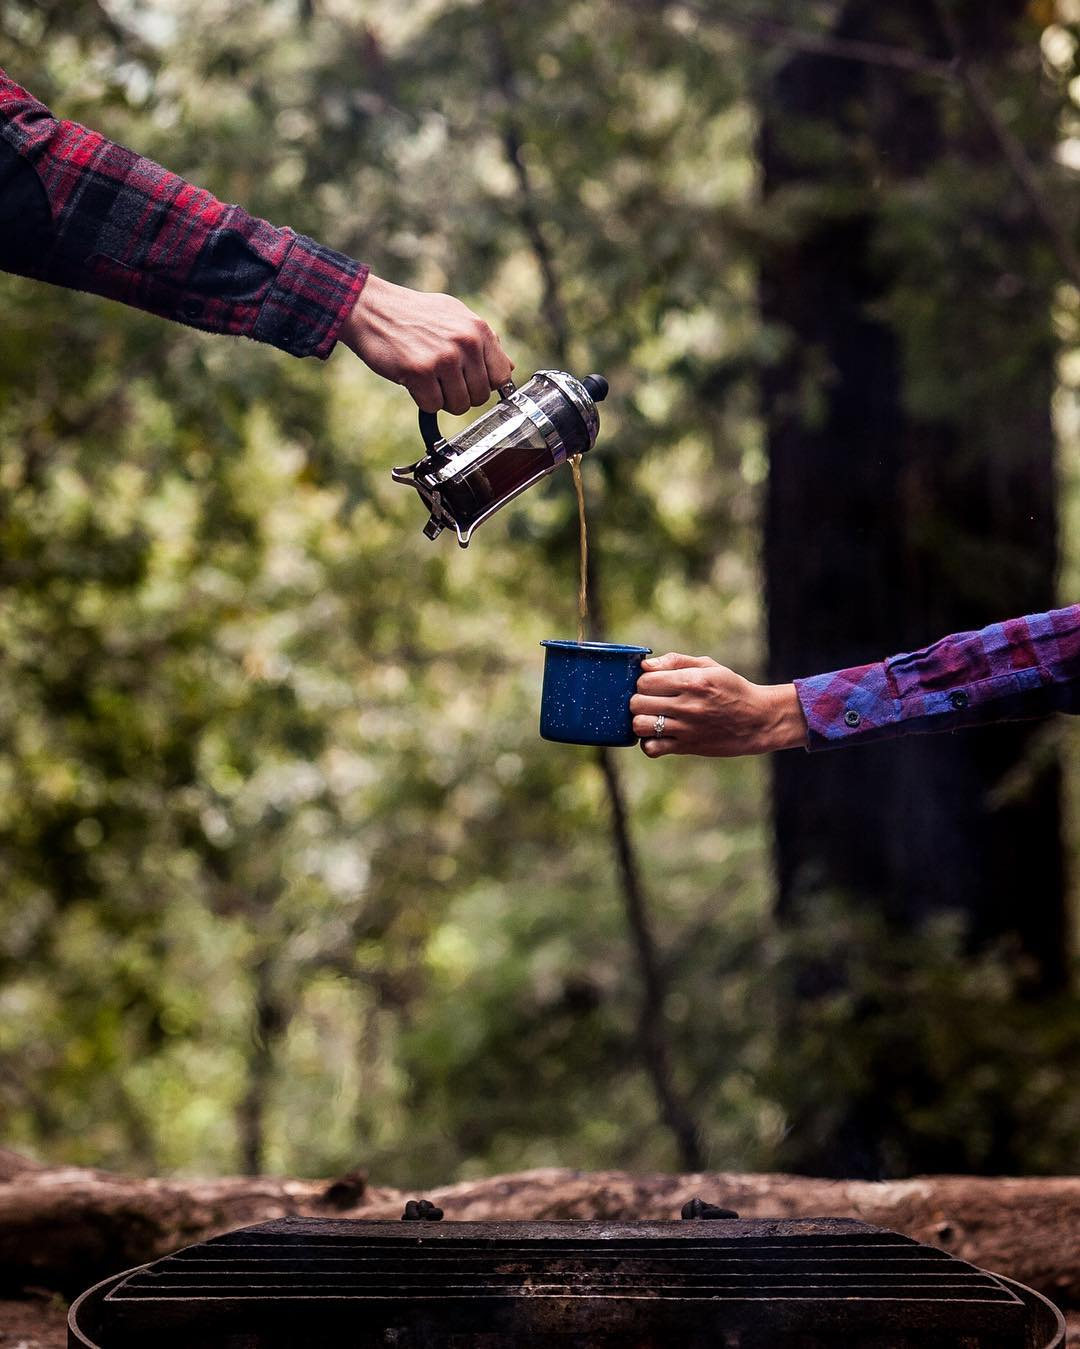 Time to start your week.  #pladra #camping #coffee #campfire #morning #outdoors